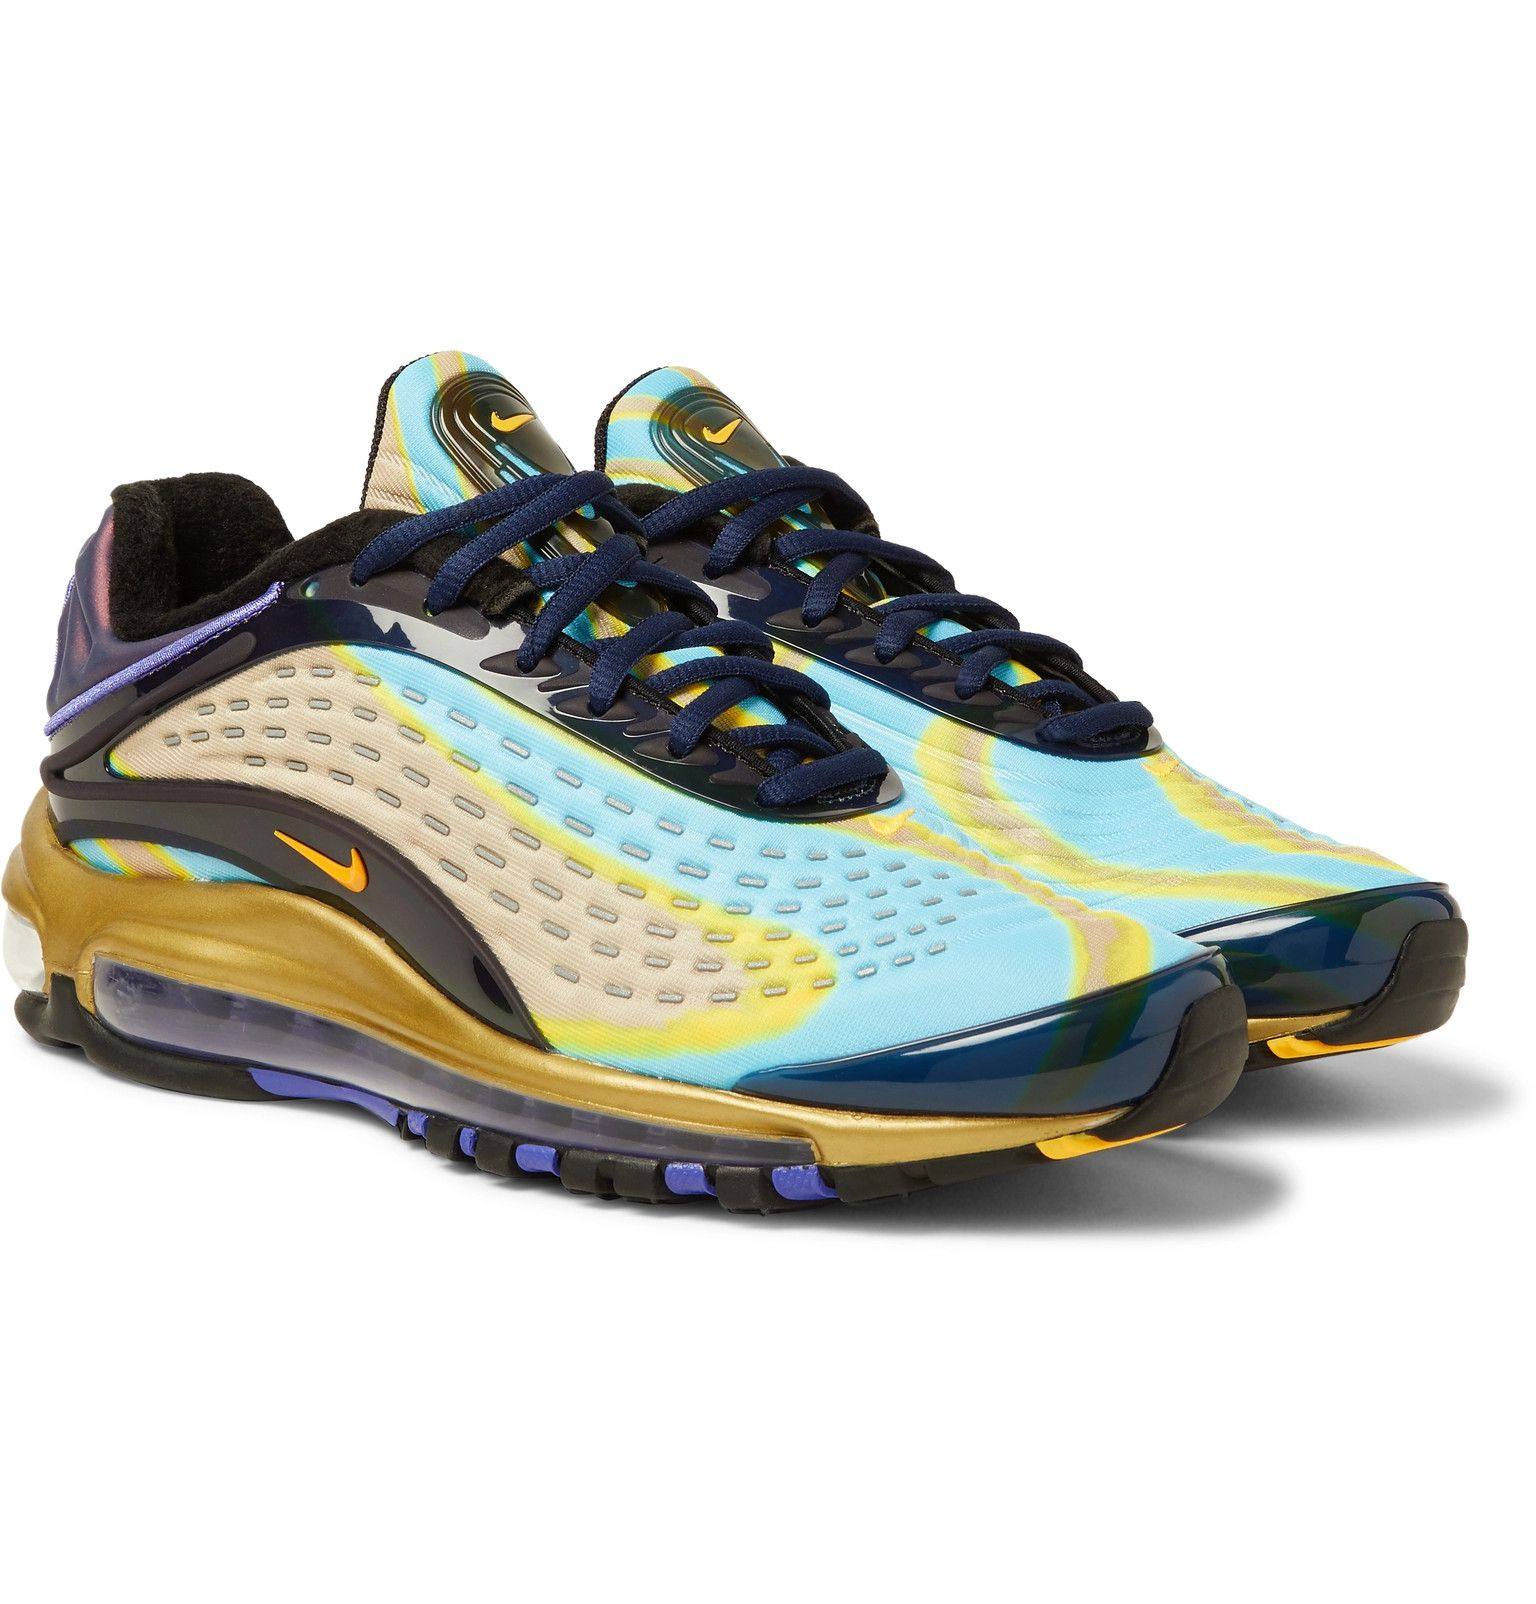 Nike Air Max Deluxe Rubber Trimmed Mesh Sneakers Sneakers Nike Air Max Sneakers Men